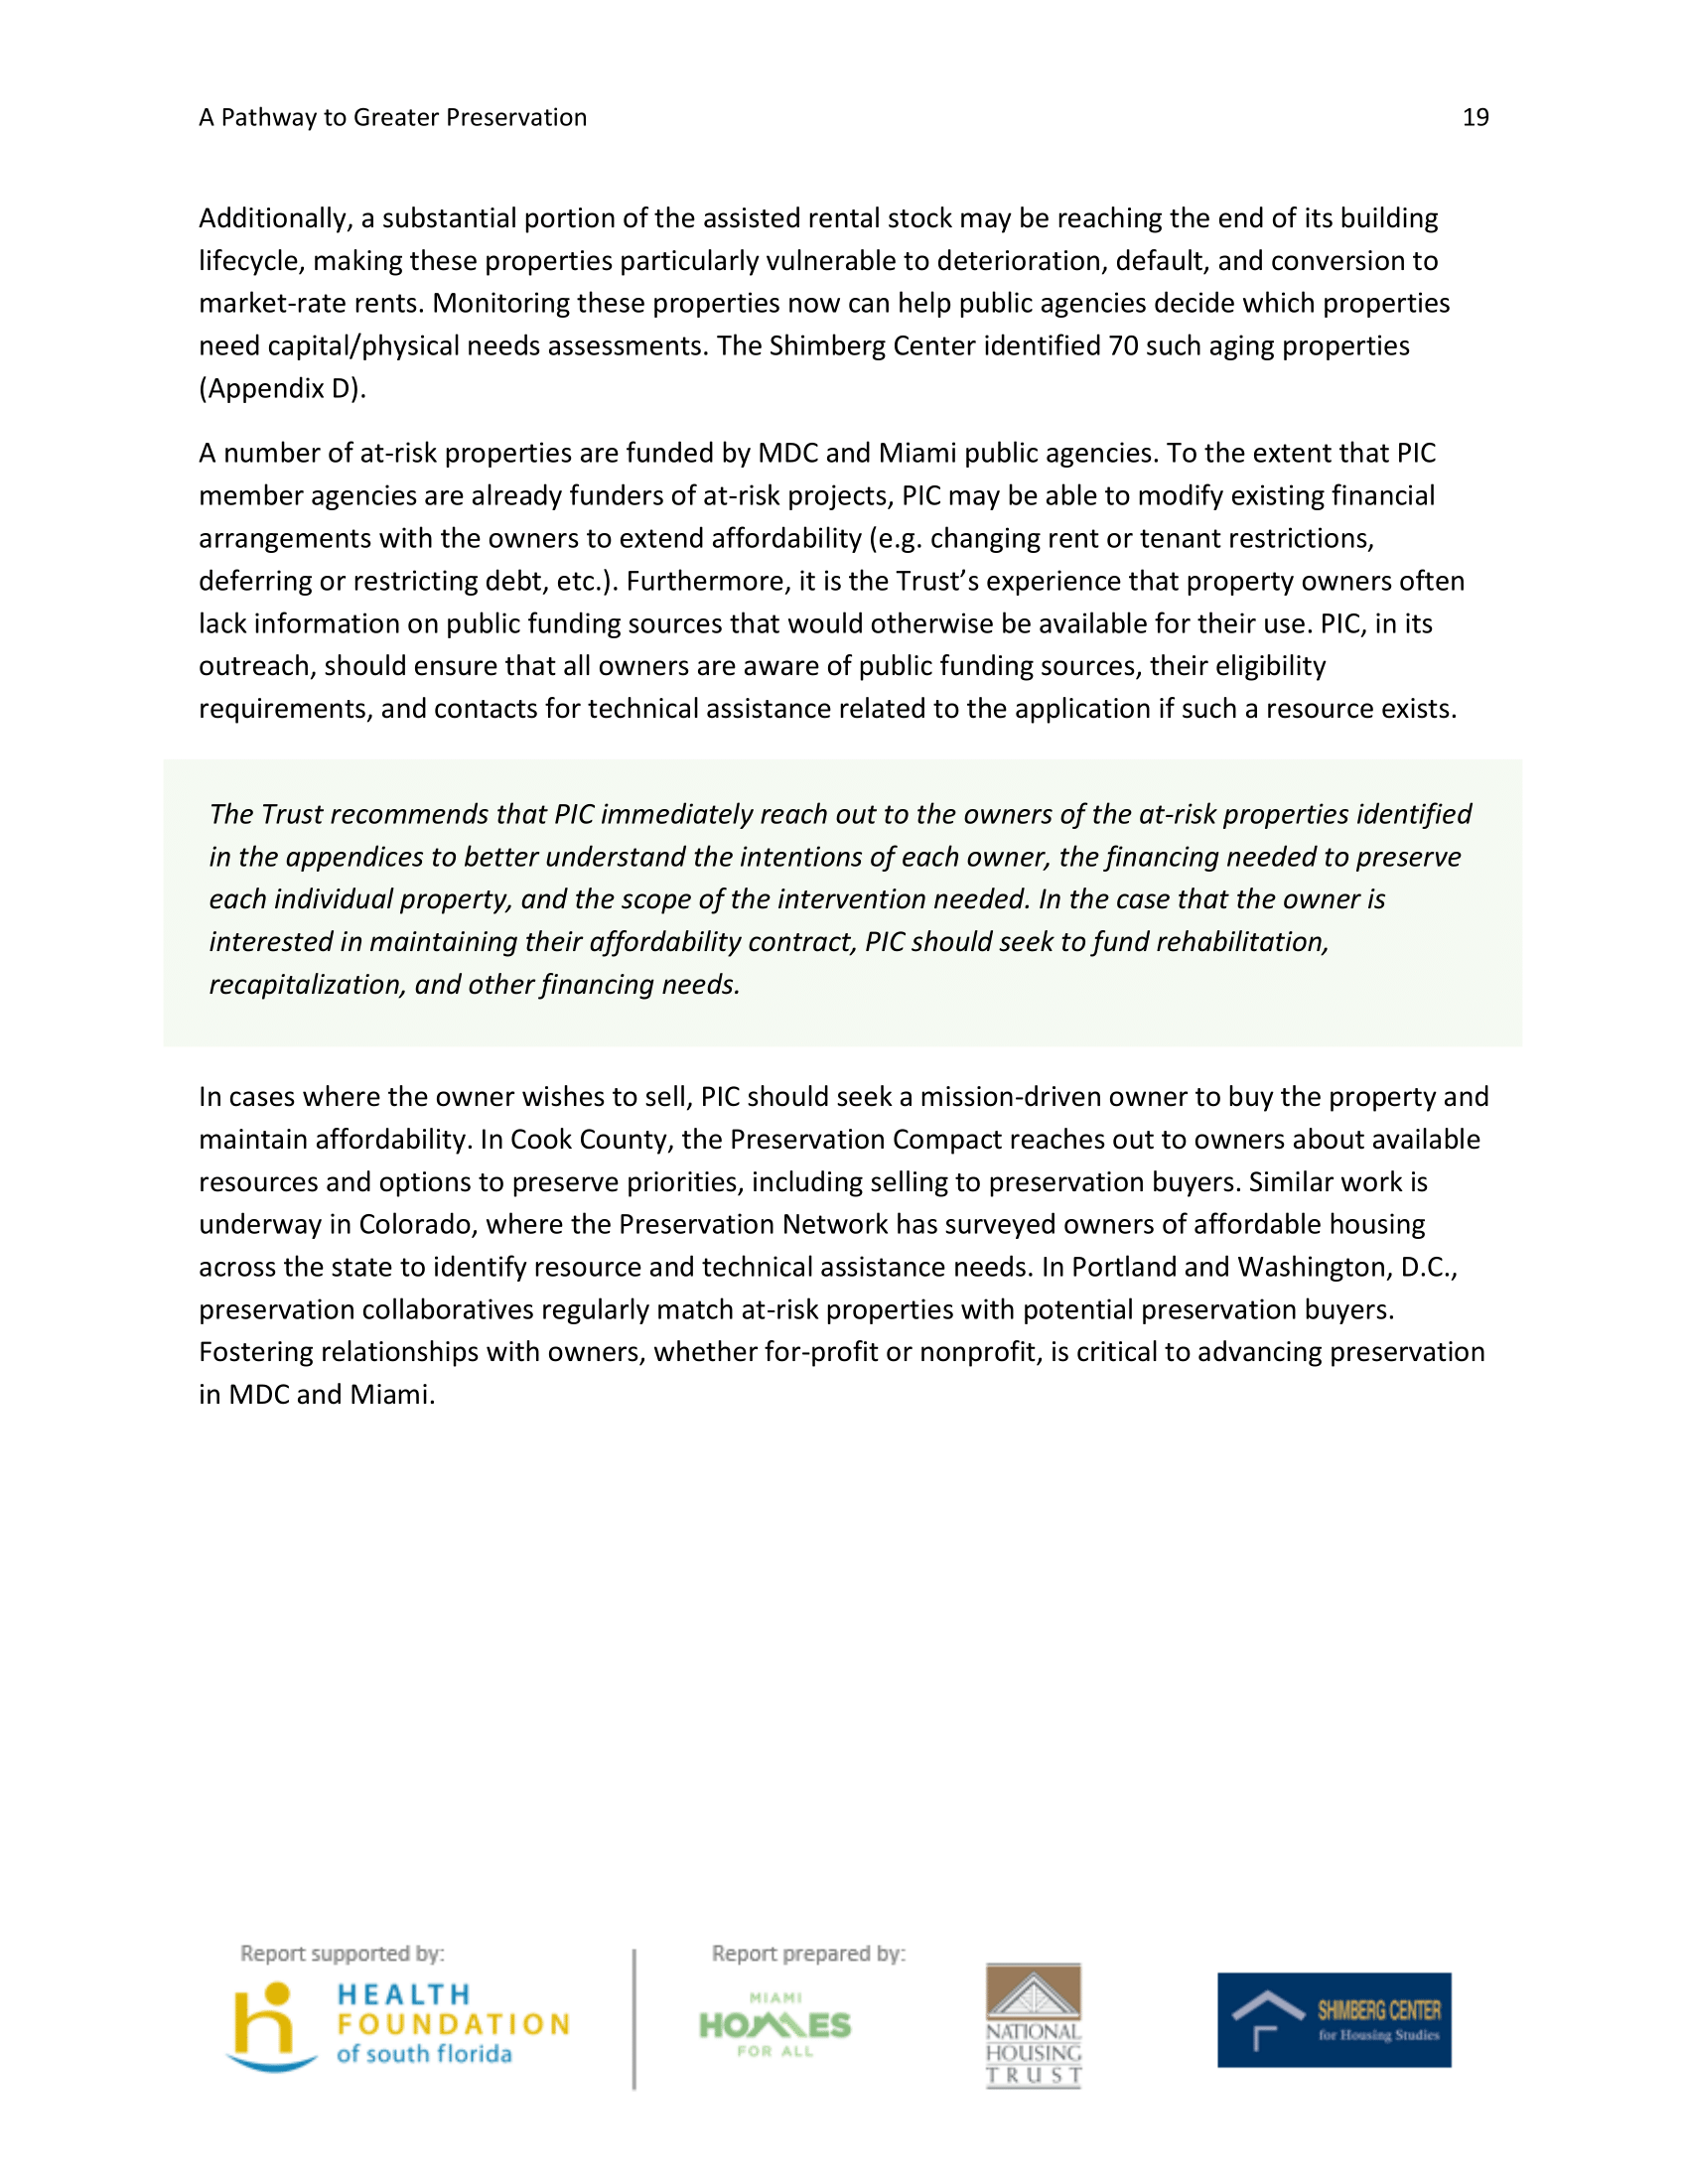 A Pathway to Greater Preservation - February 2018-27.png